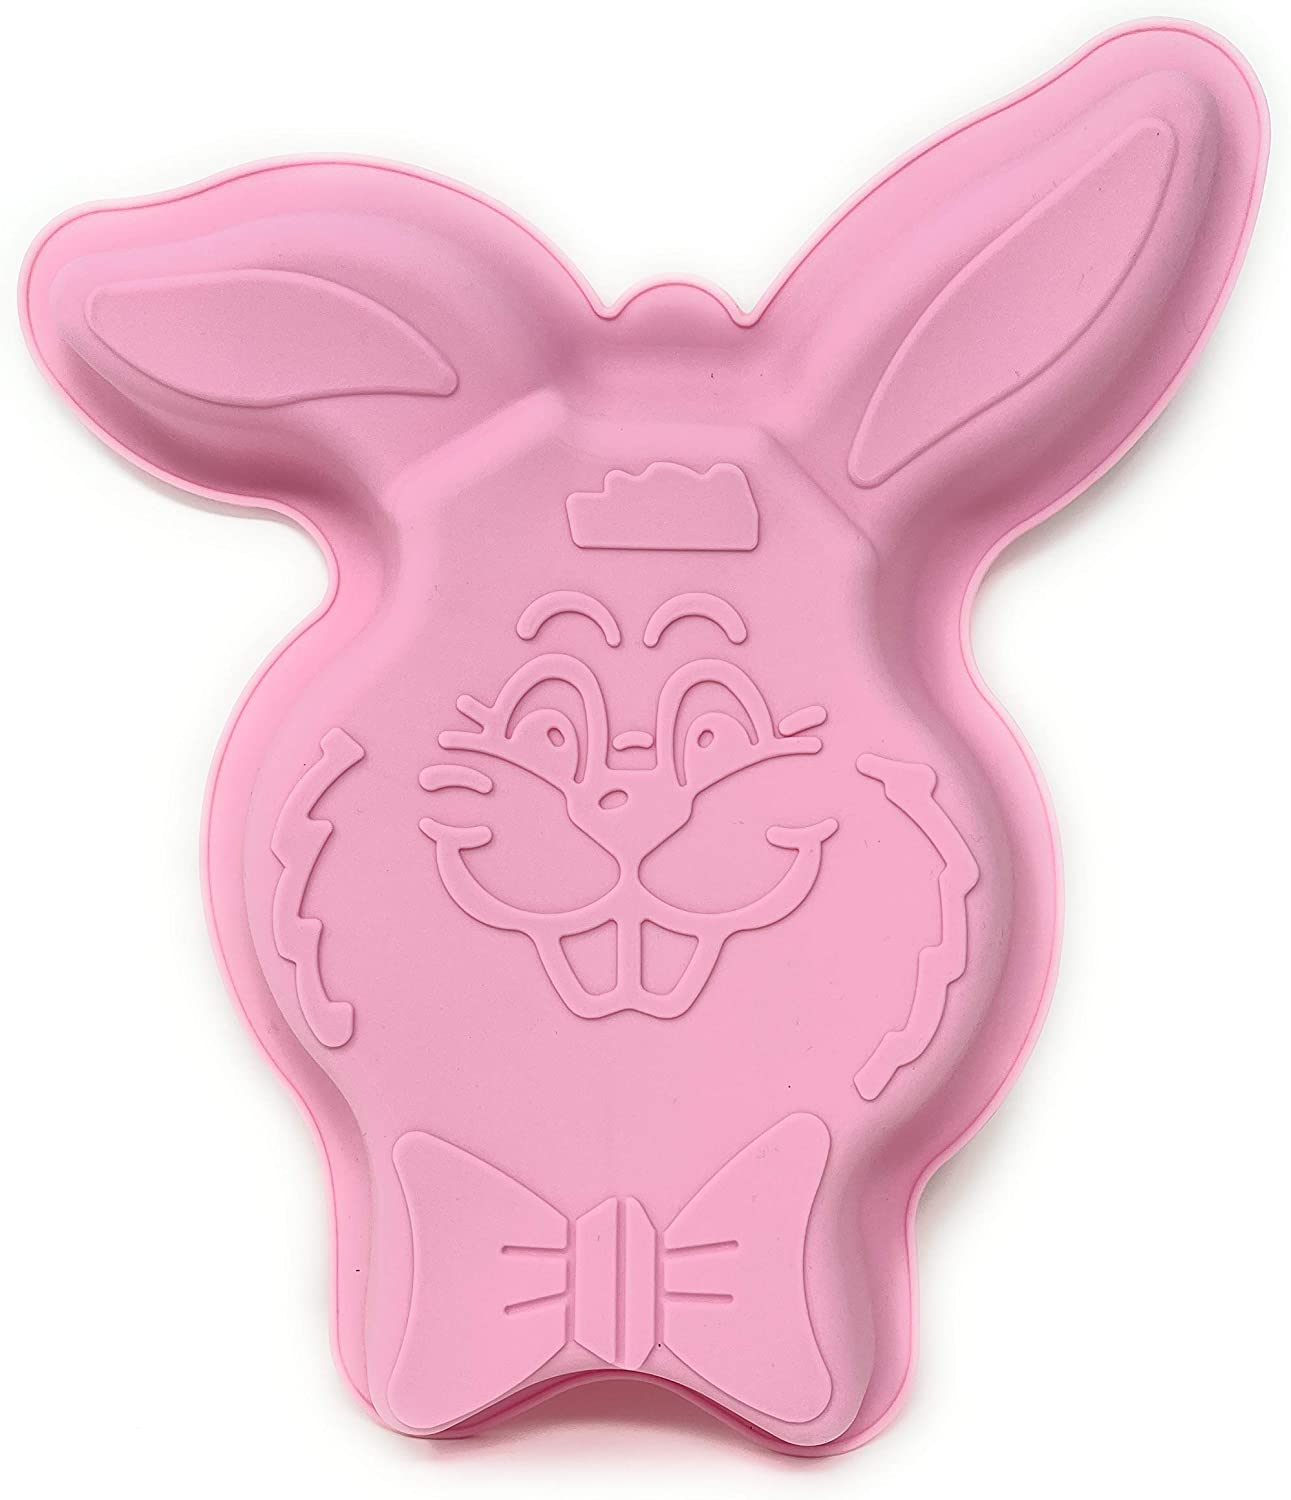 Easter Bunny Cake Popular standard Pan Non-Stick Popular standard Baking Mold for Rabbit Silicone